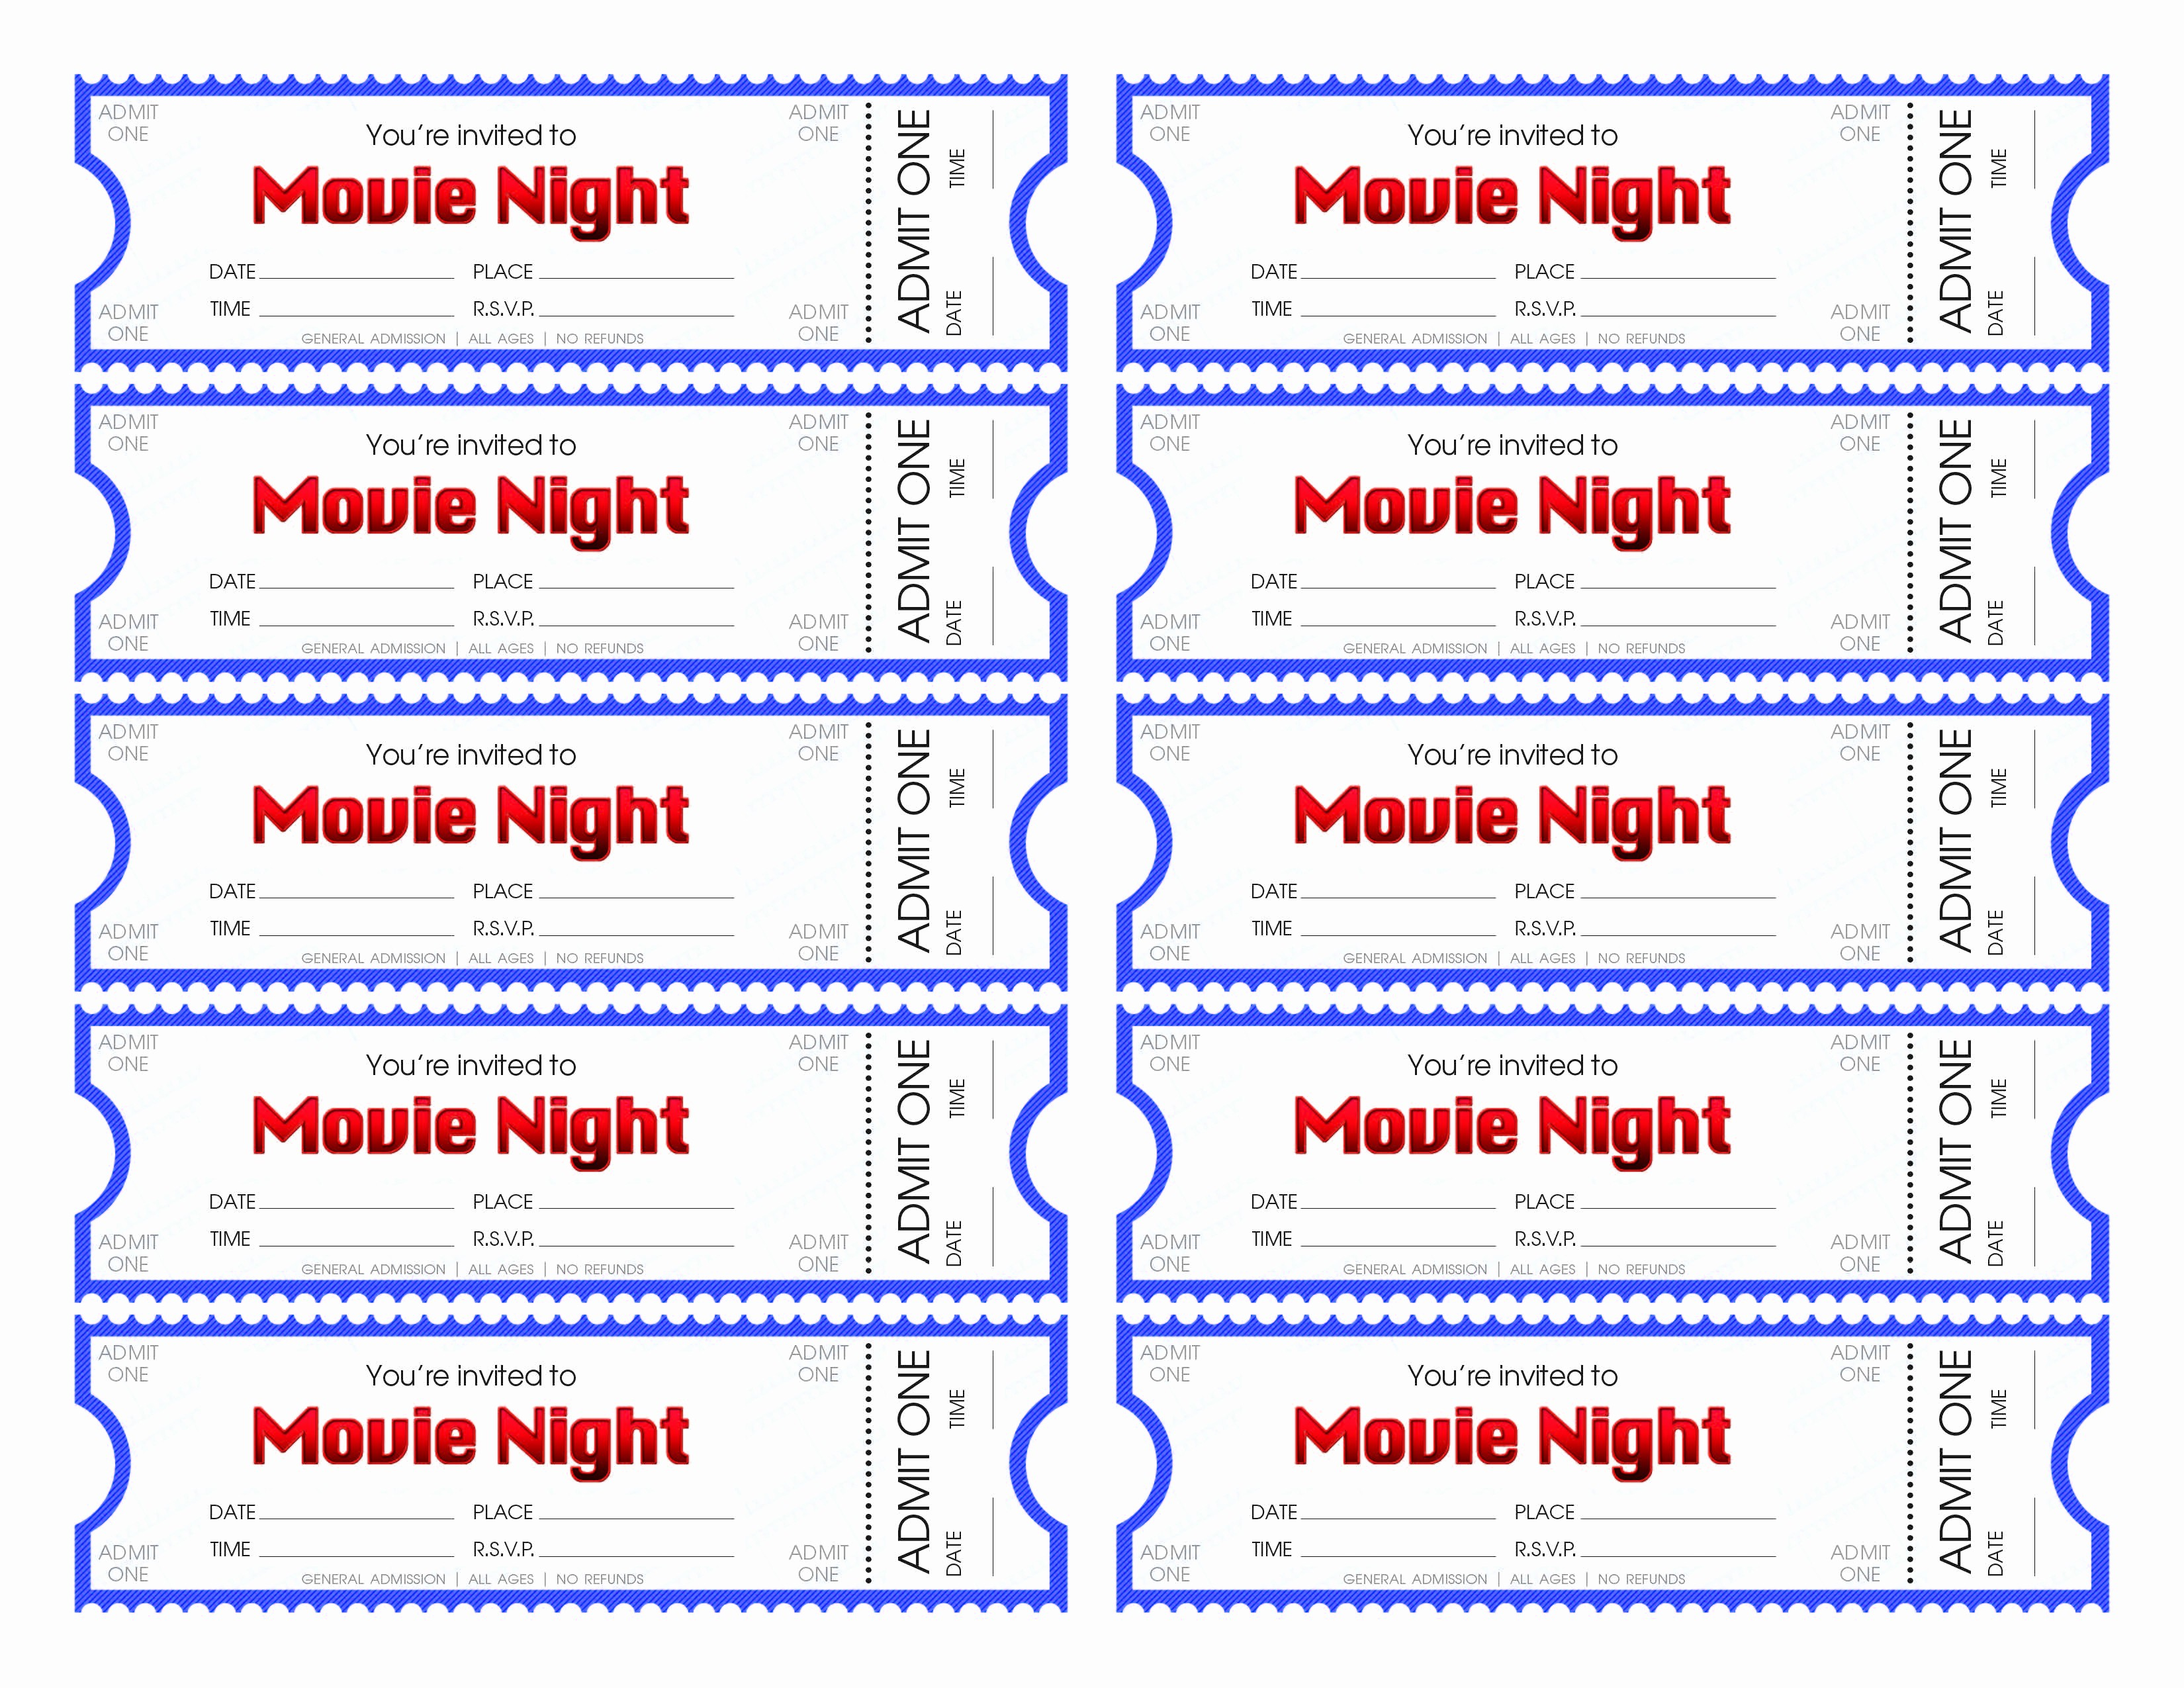 Make Your Own Ticket Template Inspirational Make Your Own Movie Night Tickets